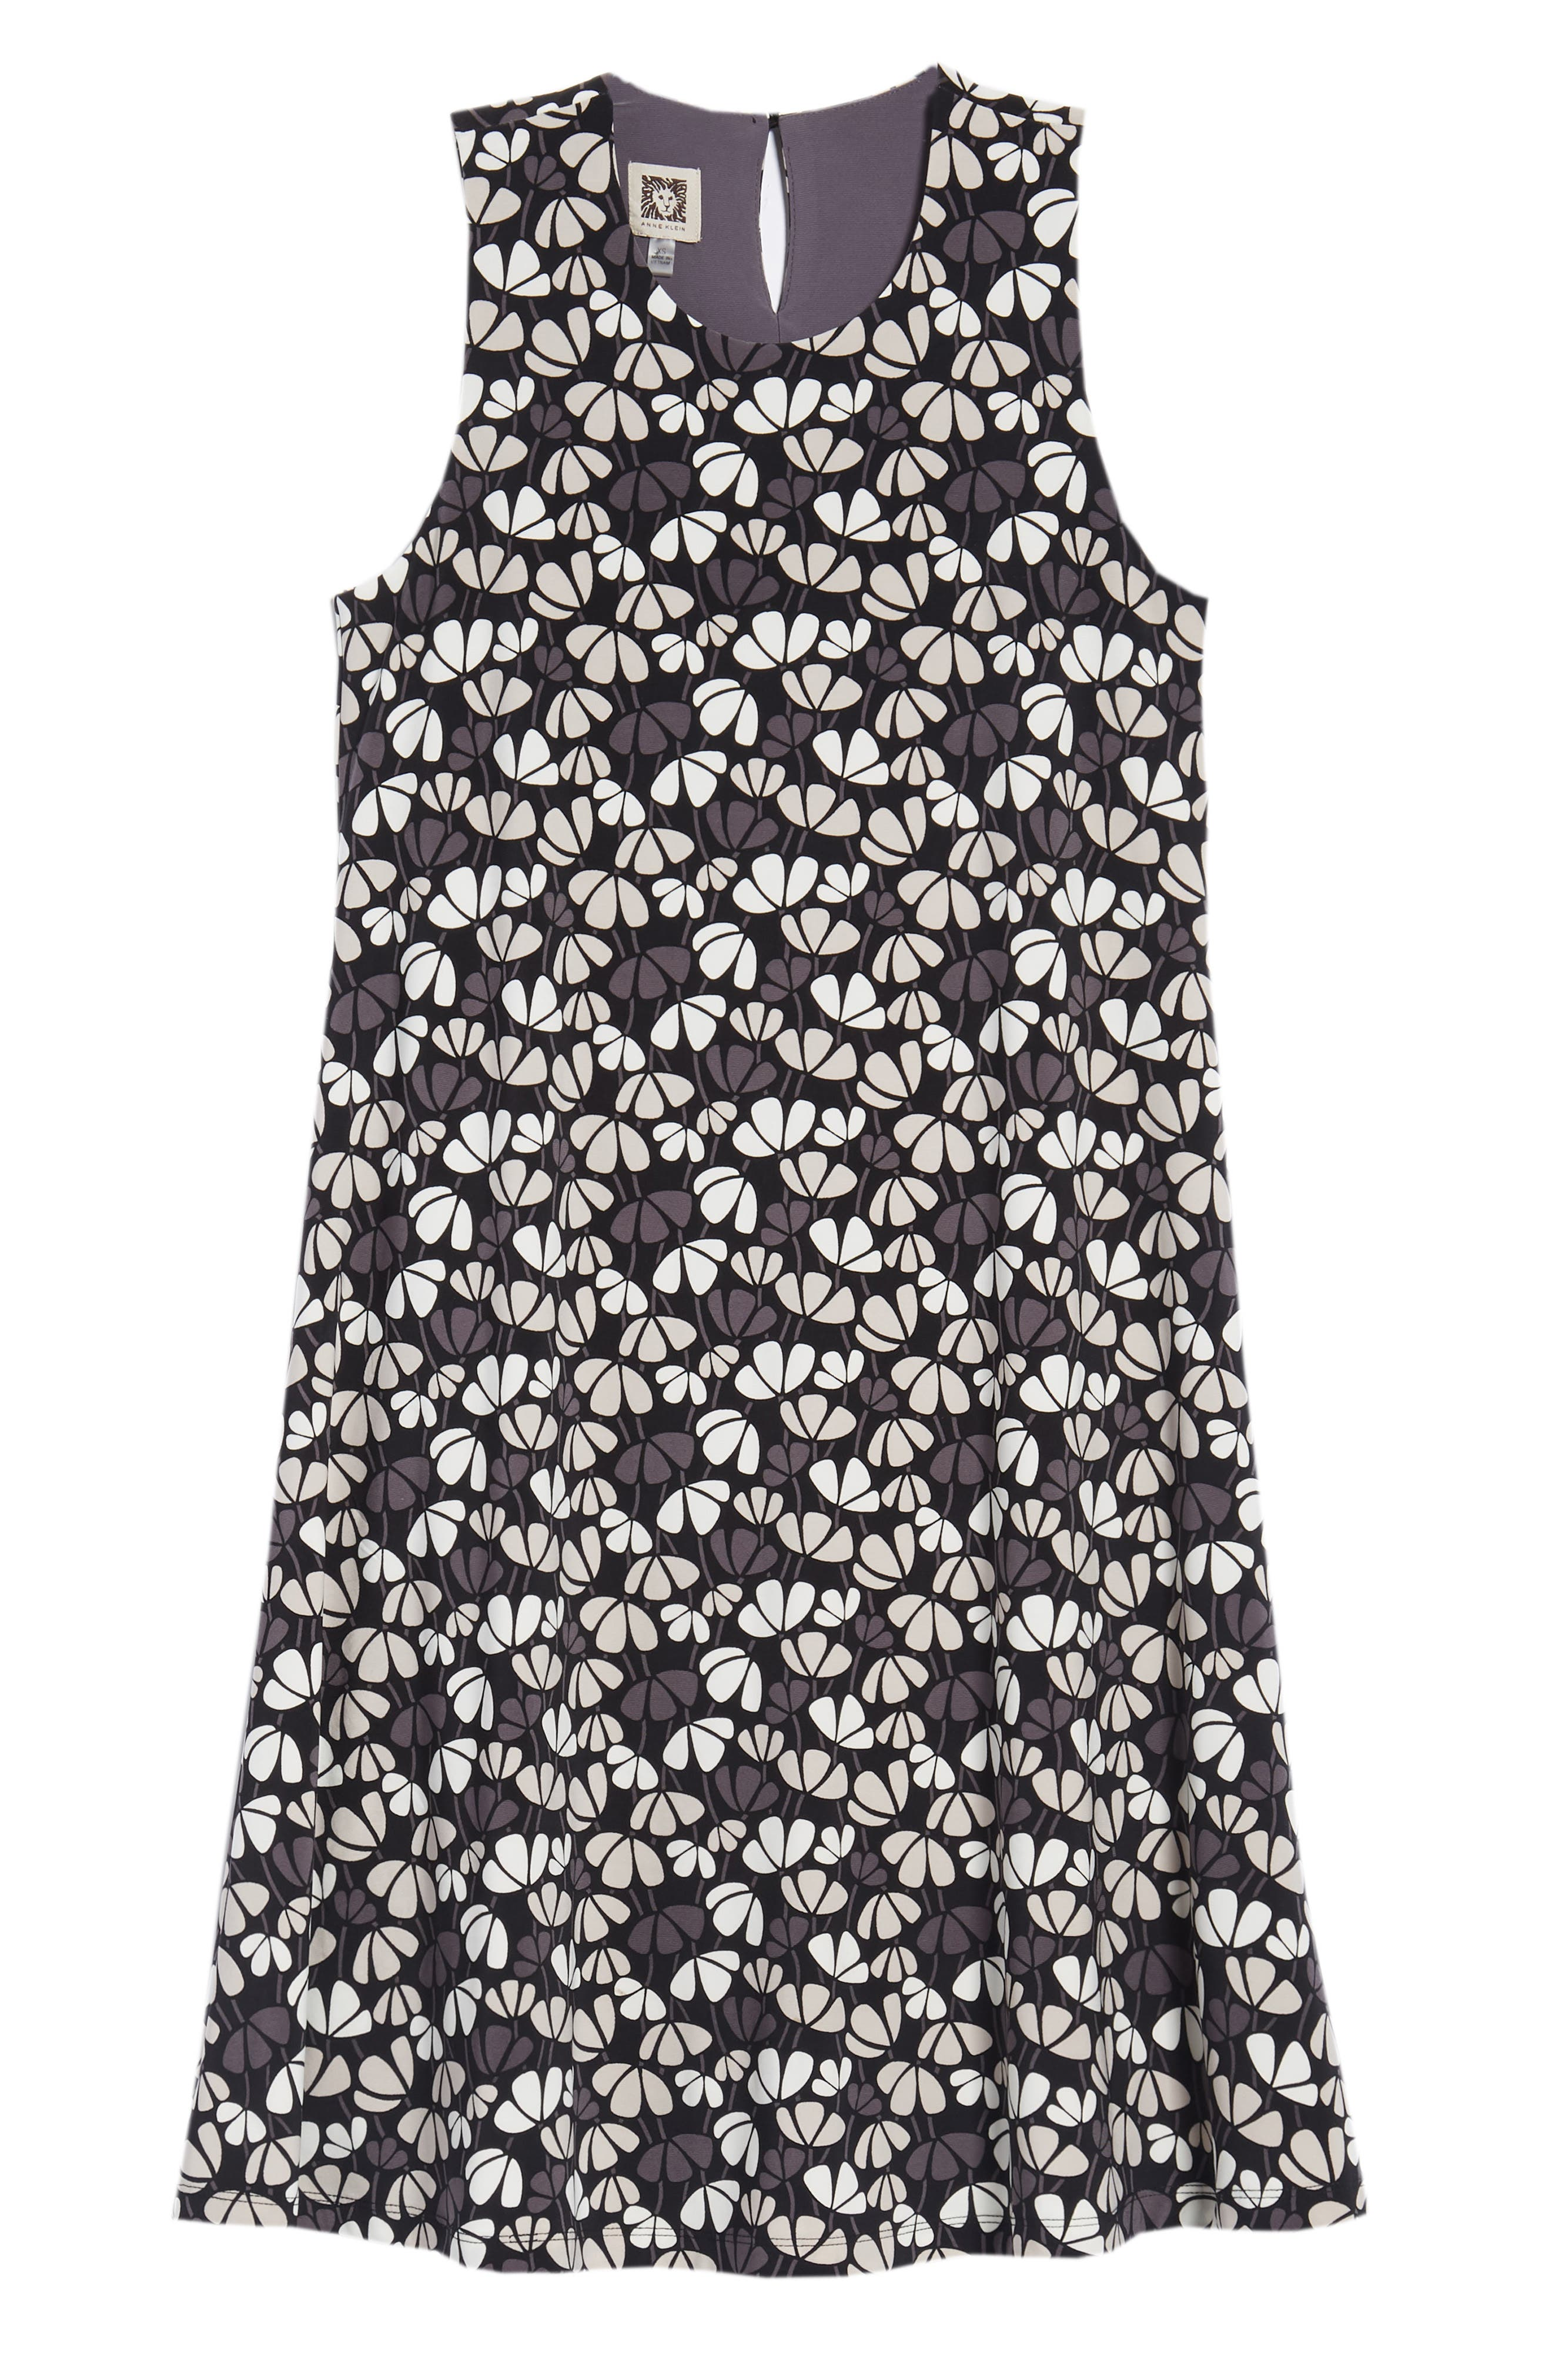 Flowerfall Stretch Knit Swing Dress,                             Alternate thumbnail 7, color,                             Black/ Oyster Shell Combo